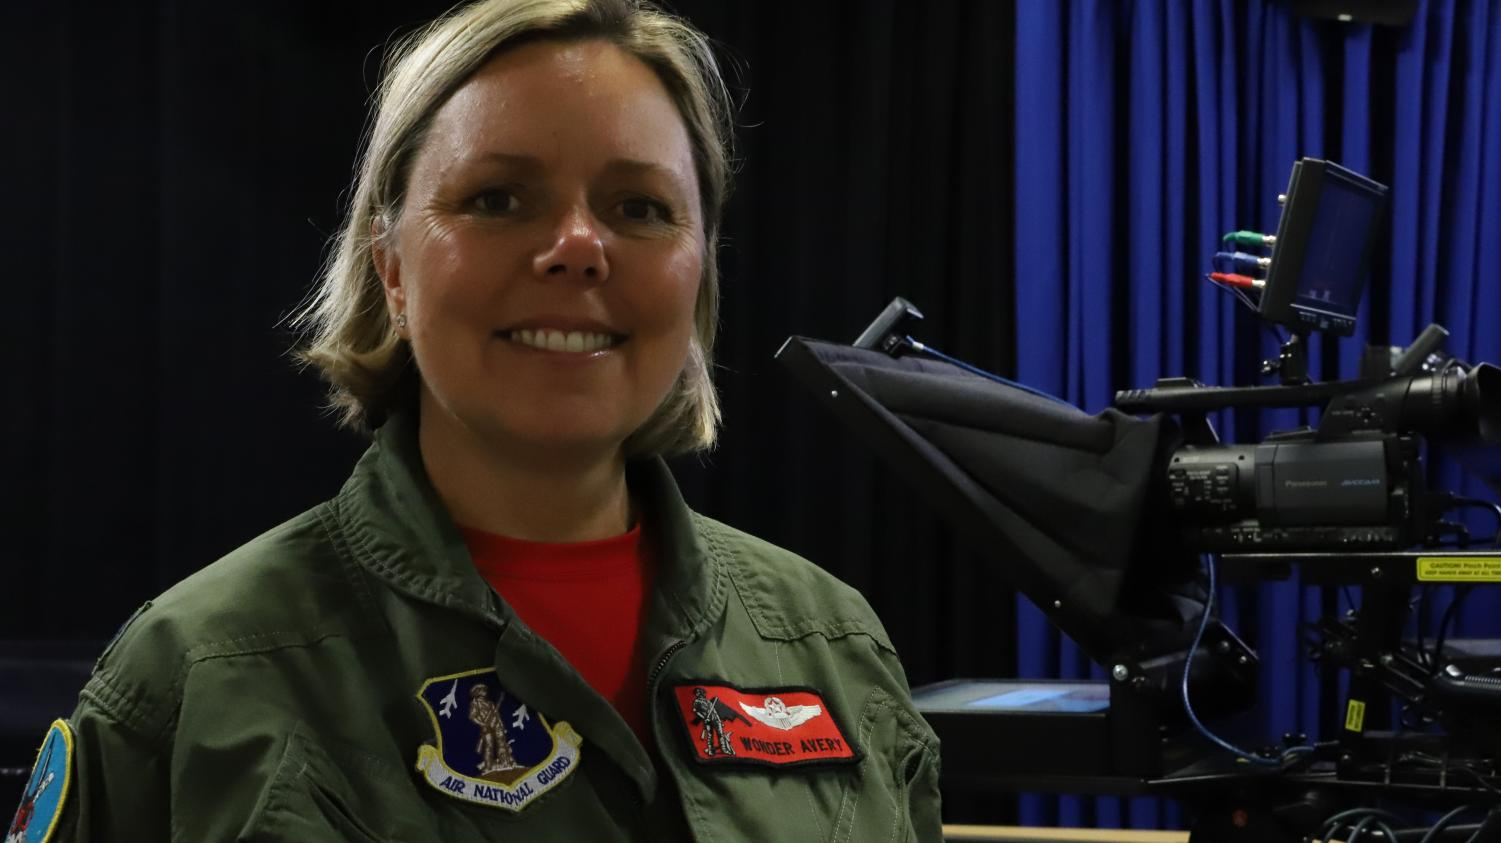 Alum and Air Force Vet Lt. Col. Jennifer Avery